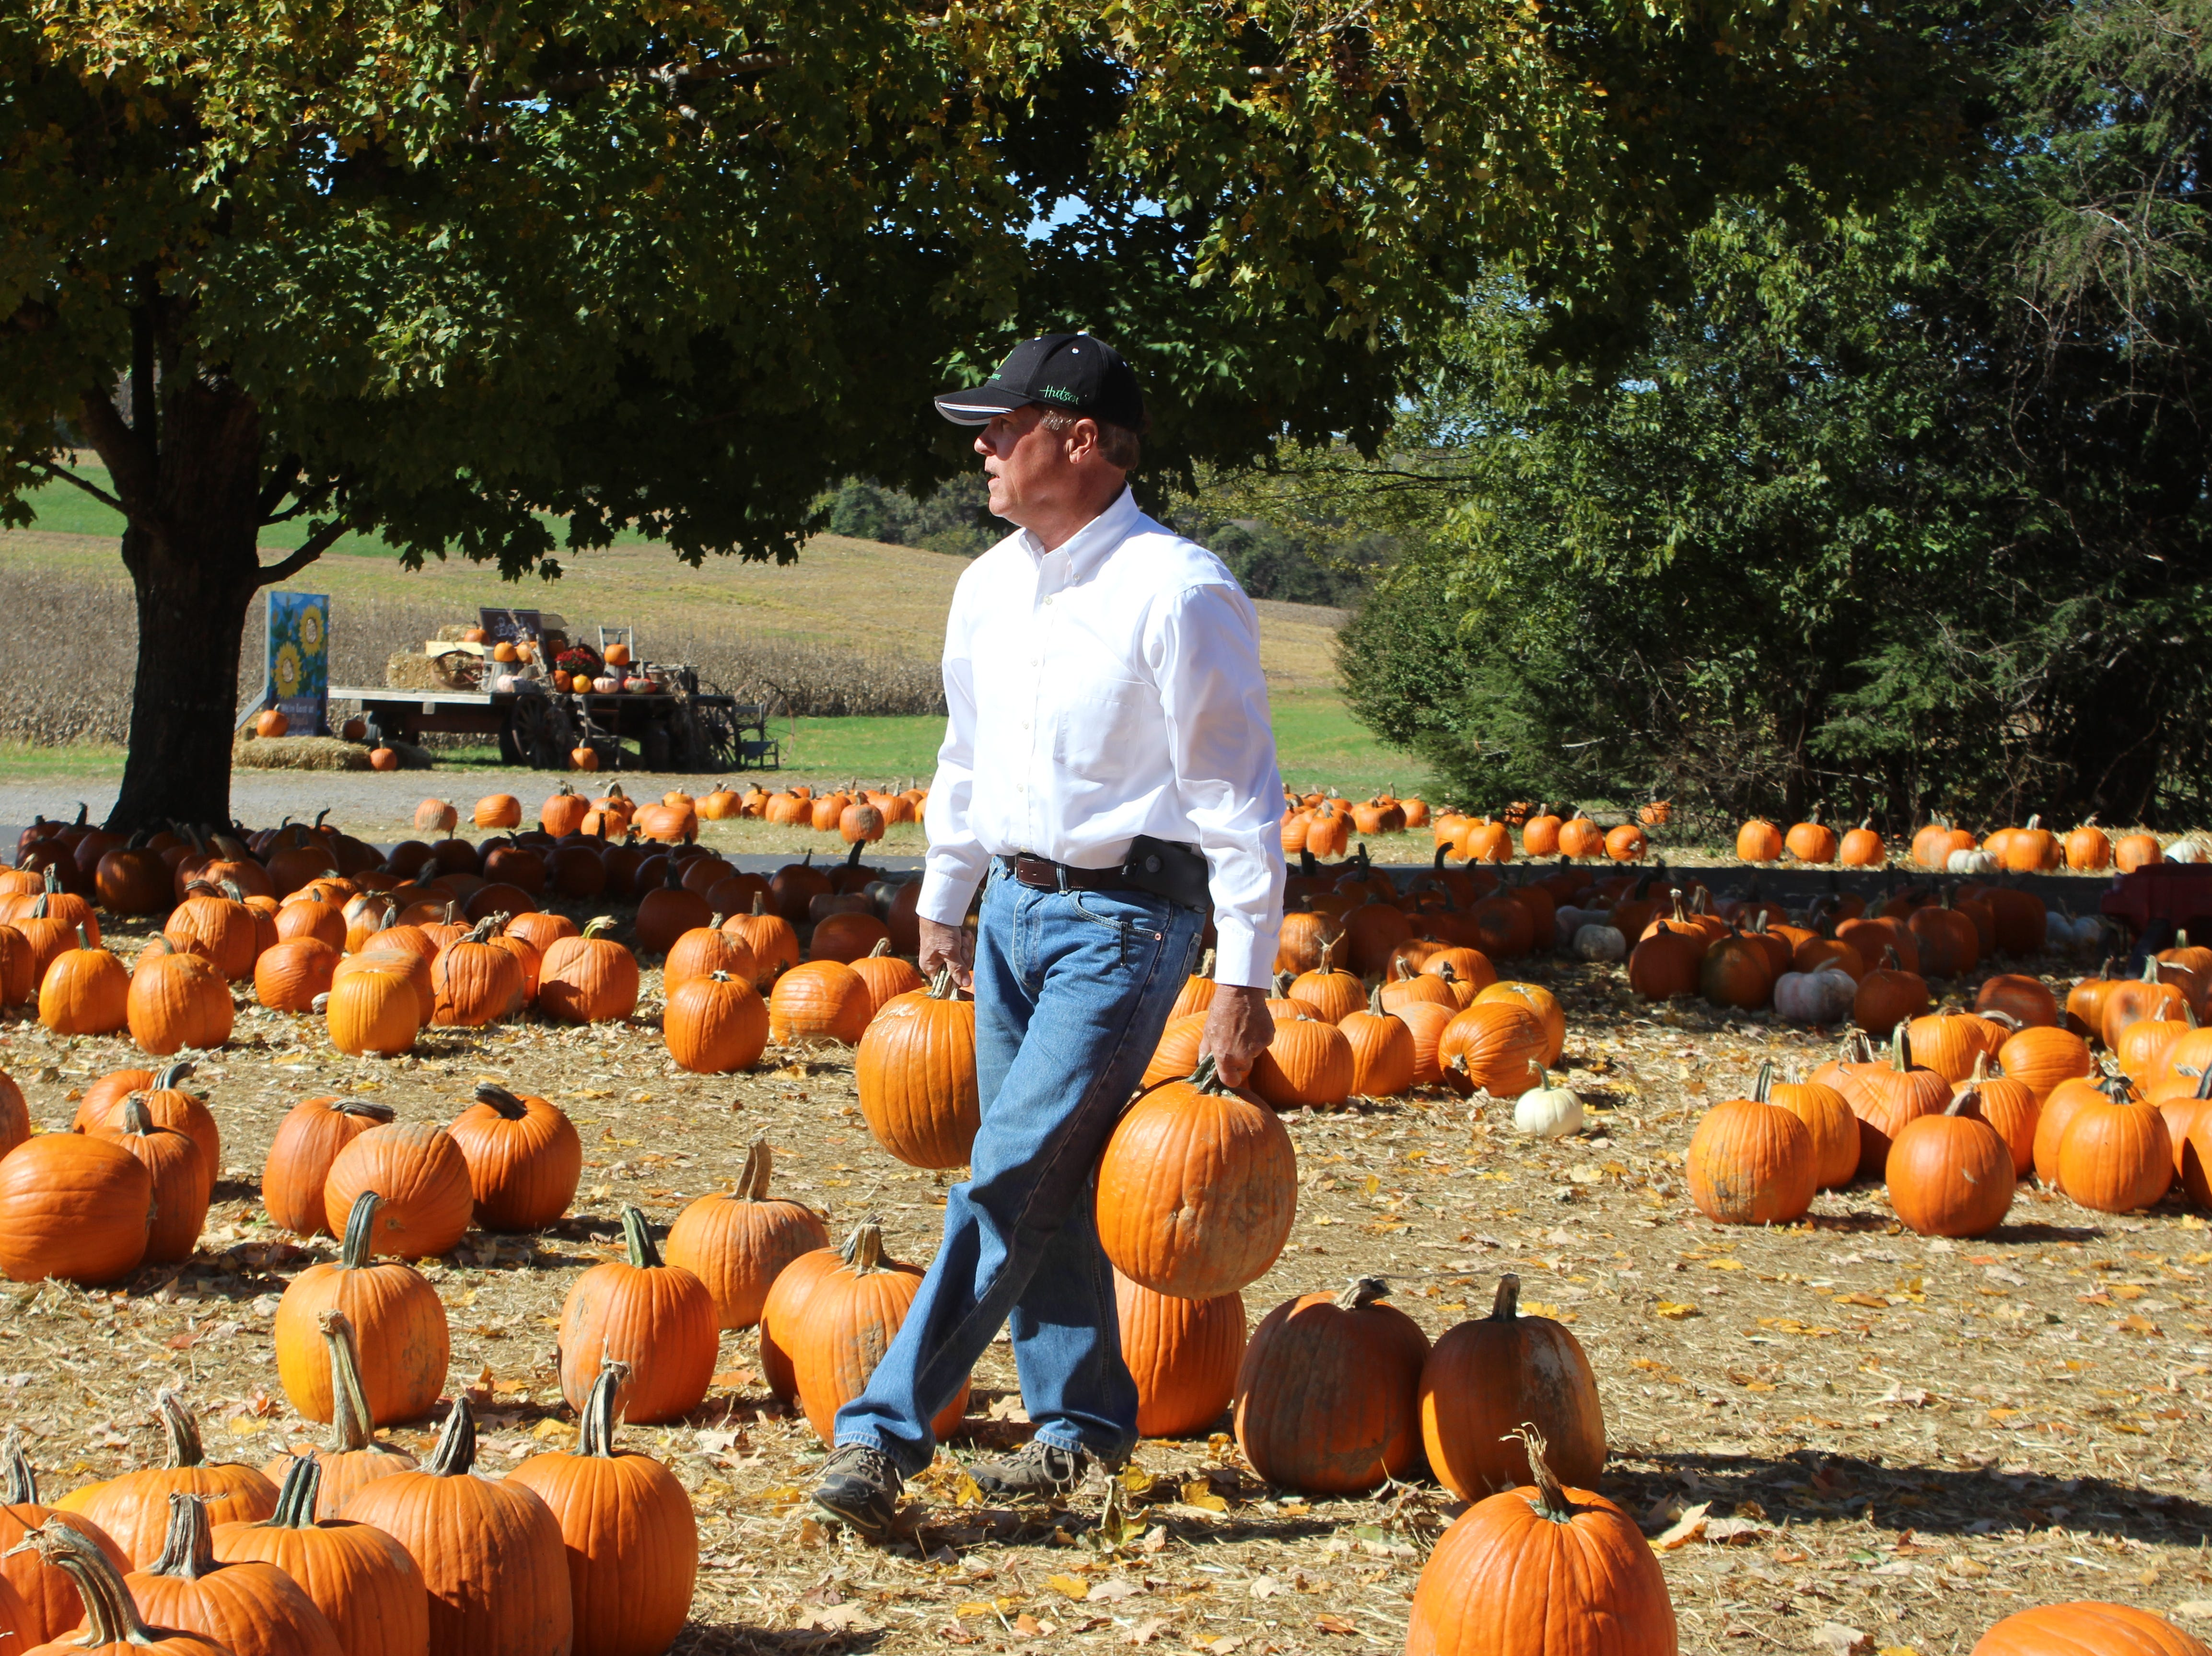 Montgomery county farmer Keith Boyd moves pumpkins at his annual pumpkin patch on Oct. 29.